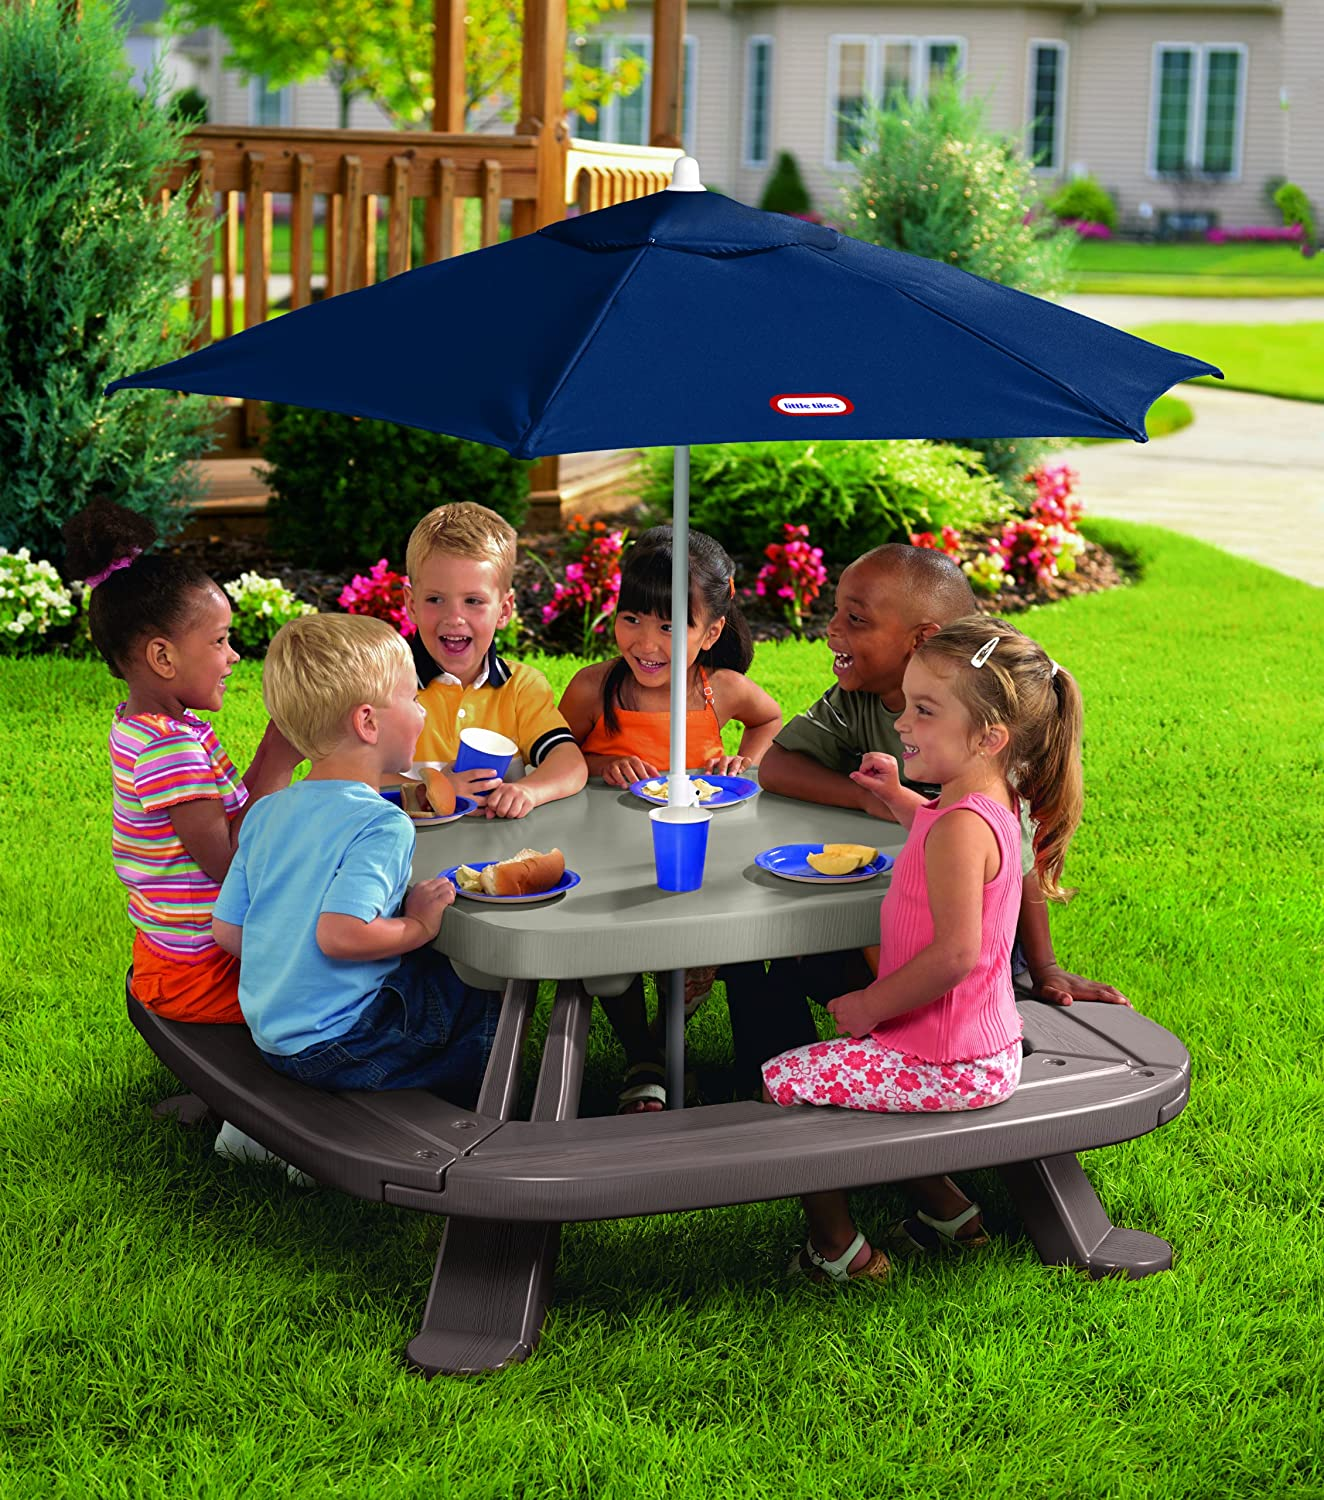 An Image of Little Tikes Fold 'n Store Table with Market Umbrella